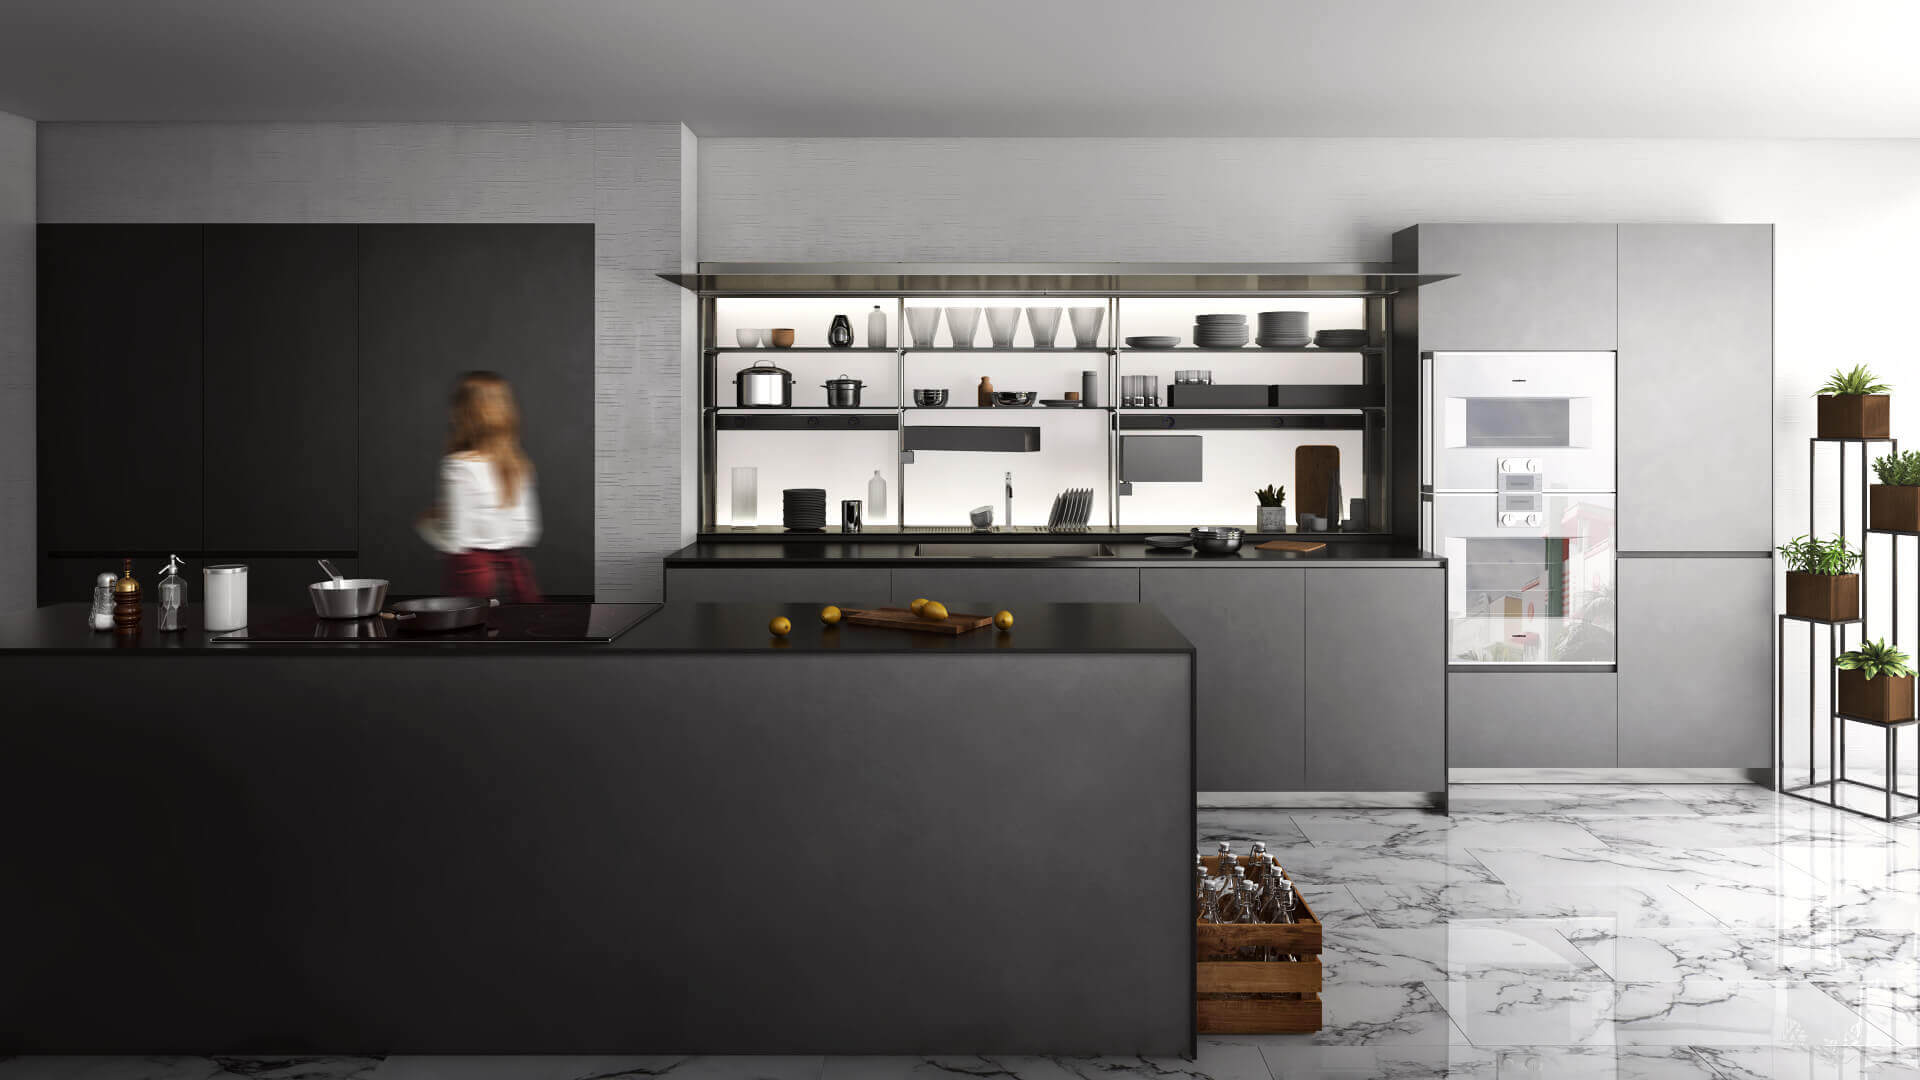 Lifestyle Photo for a Modern Kitchen